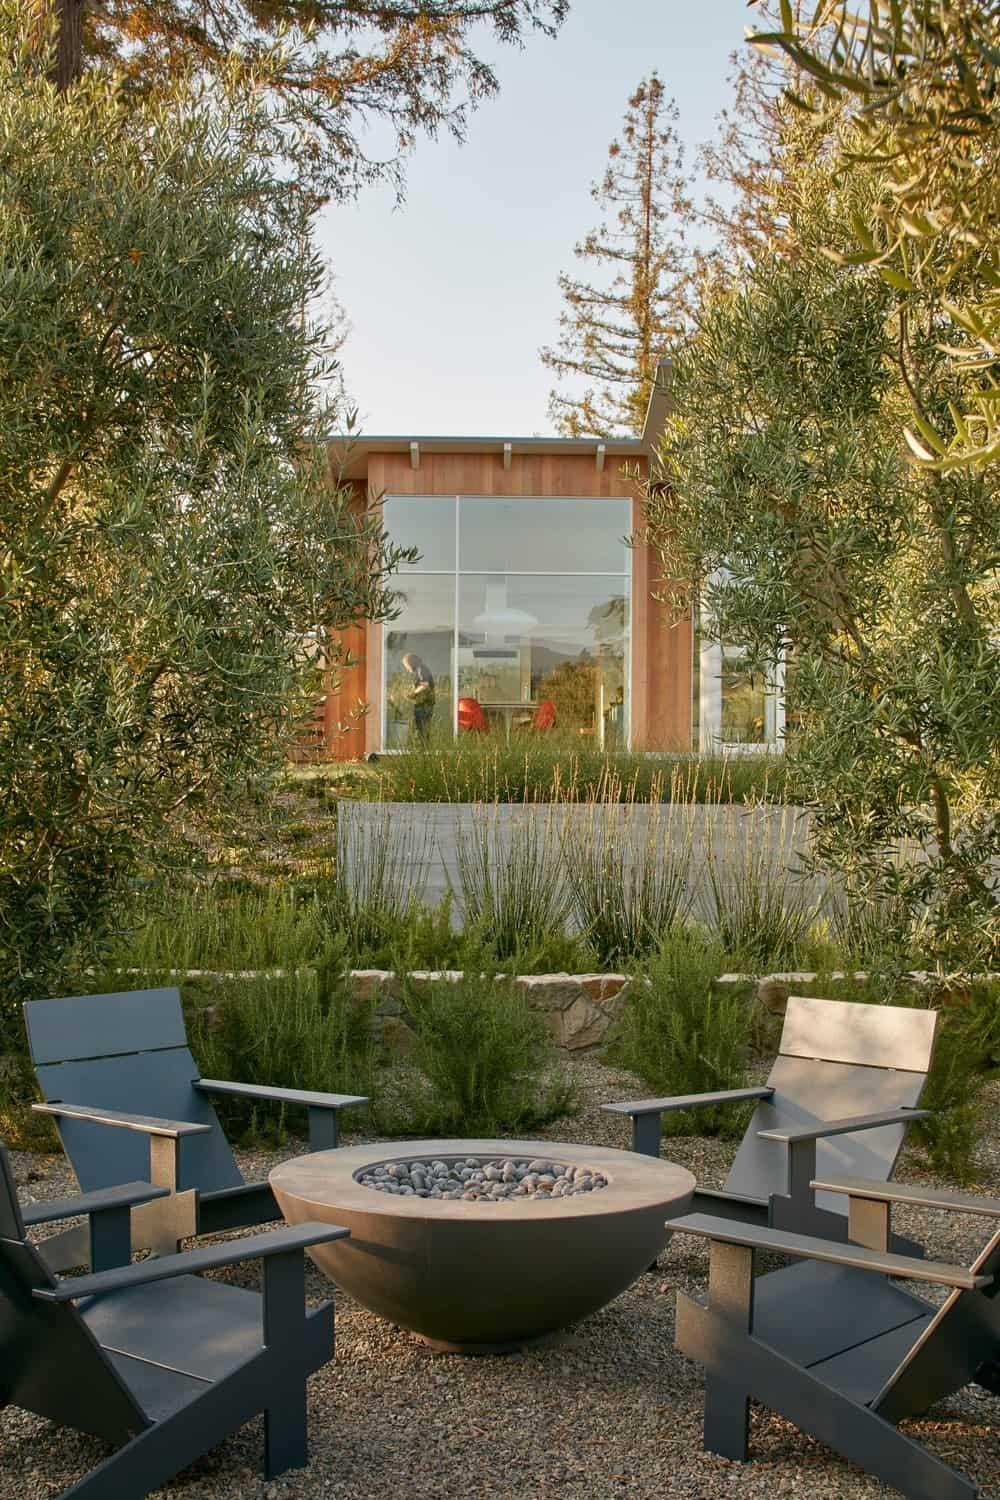 Outdoor fire pit seating in the Modern-Day California Ranch House designed by Malcolm Davis Architecture.